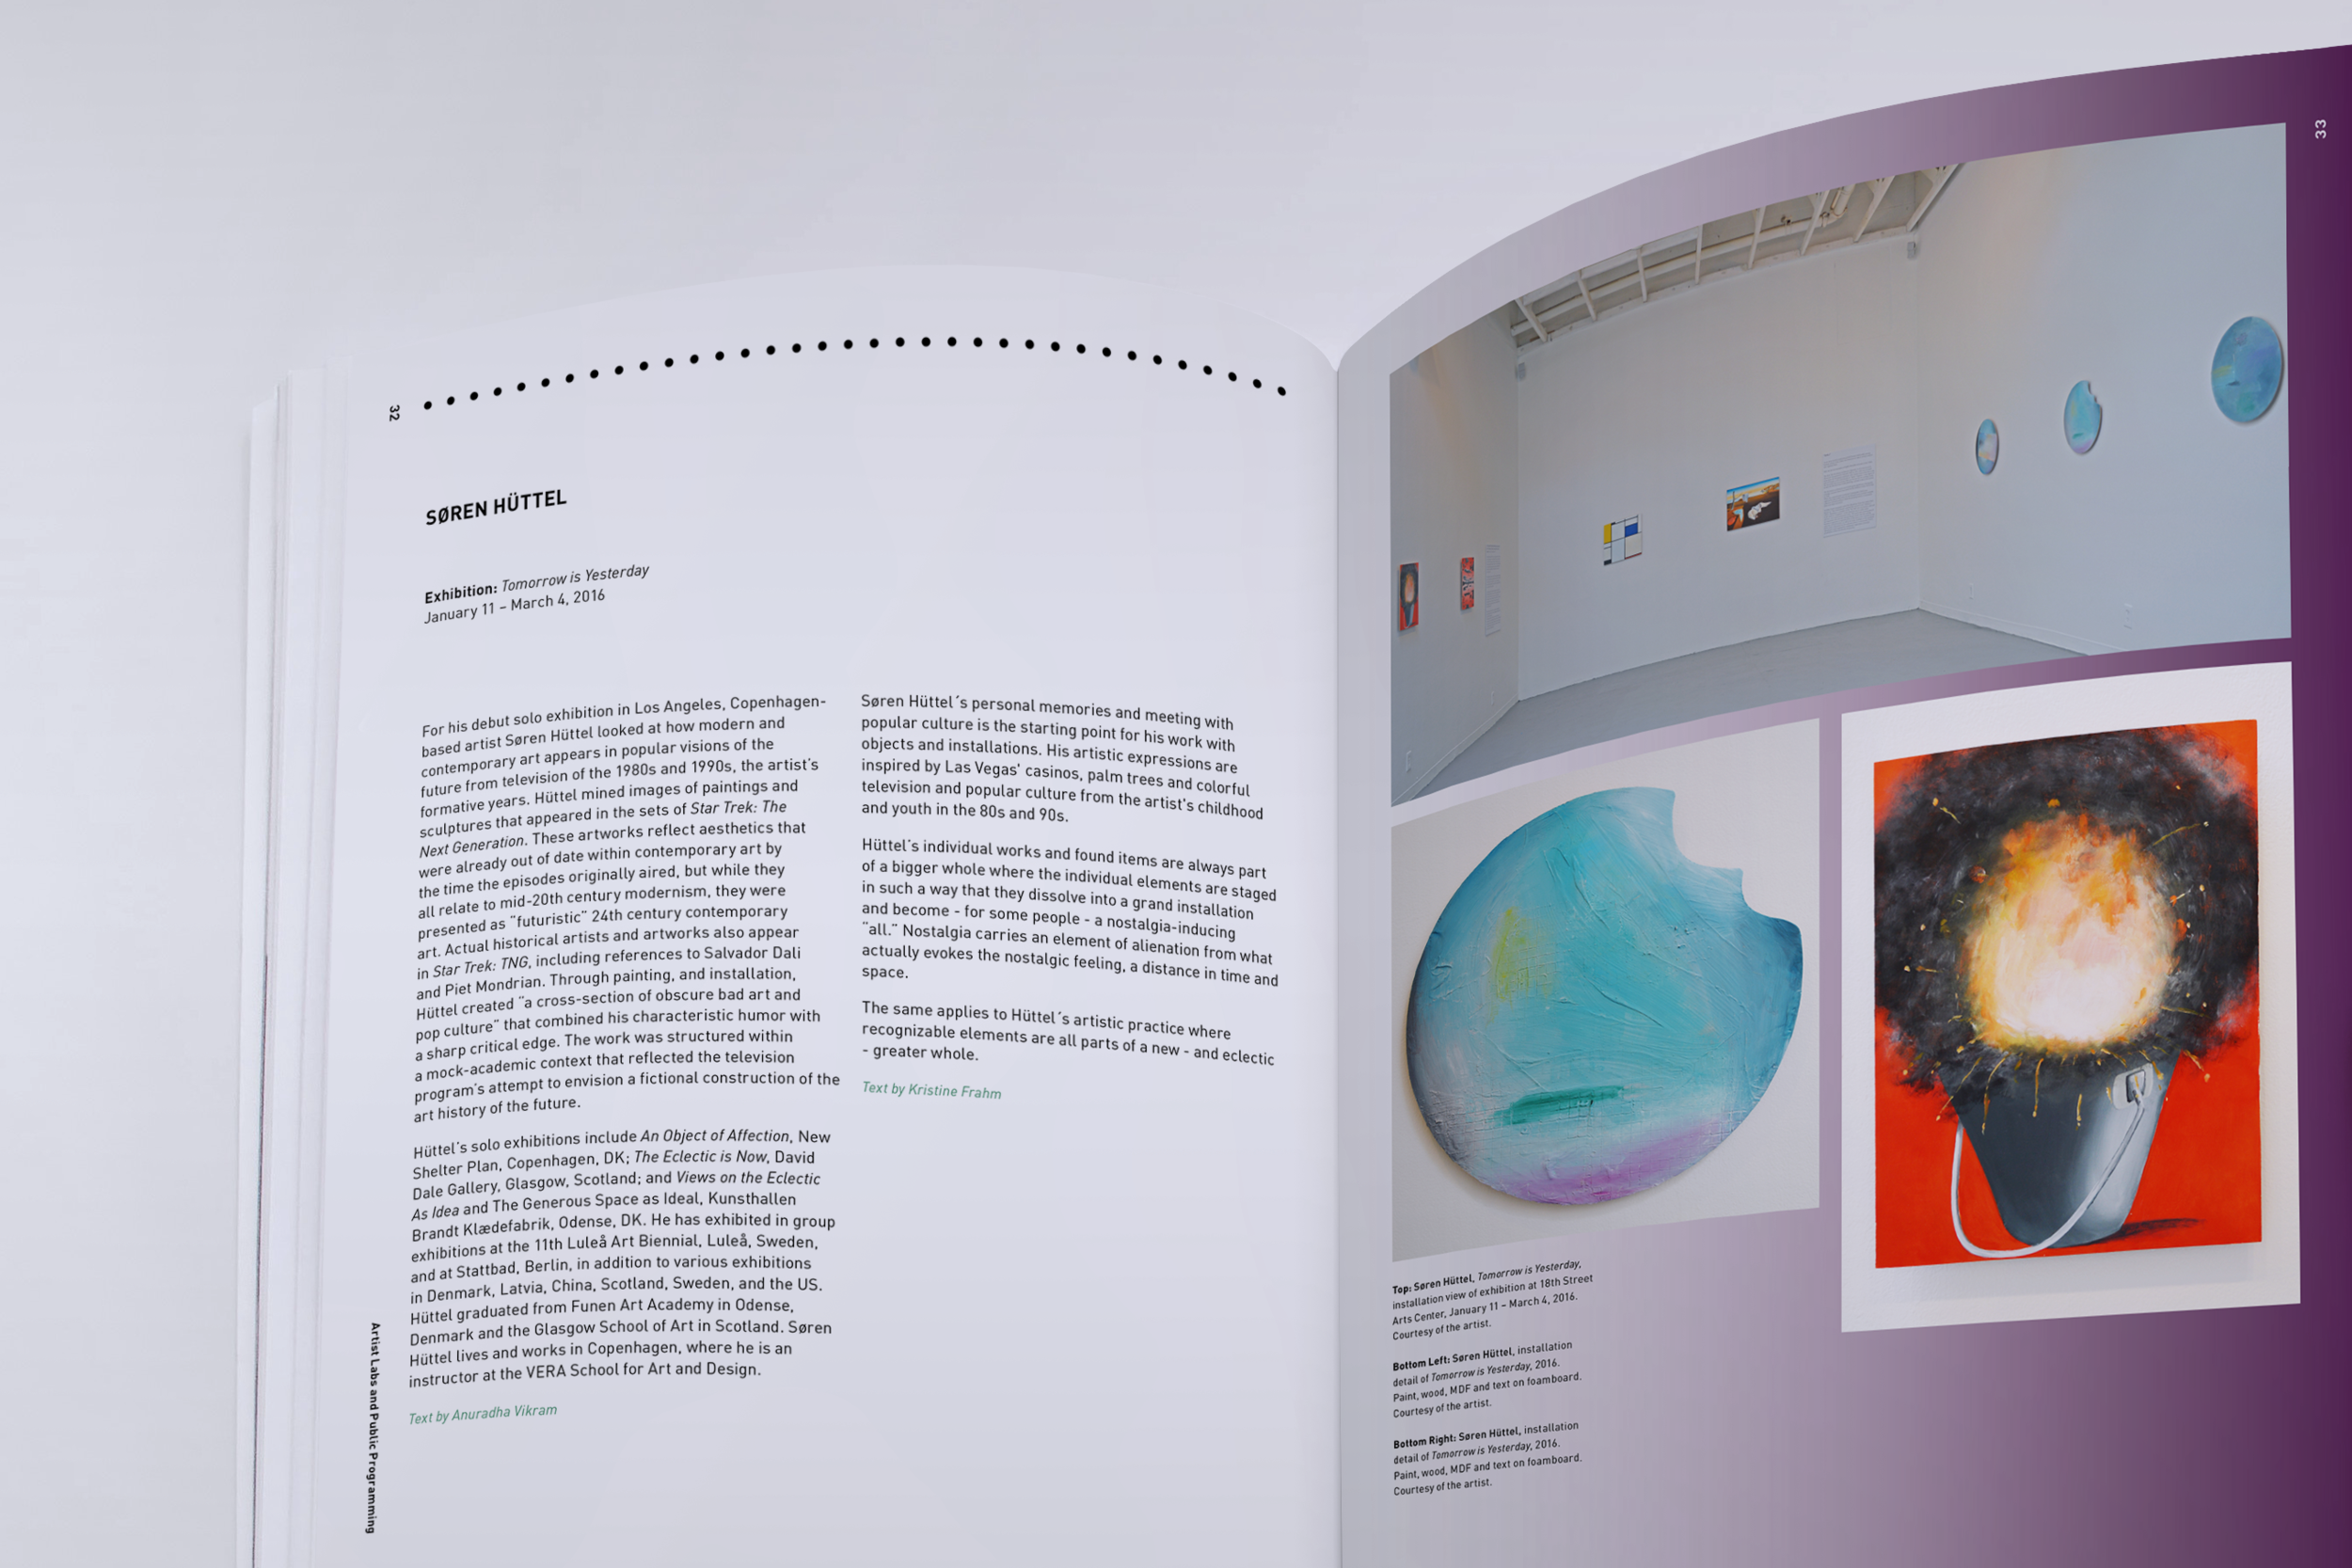 Magazine PSD Mockup_18thStreetArtCenter-cropped-in.png